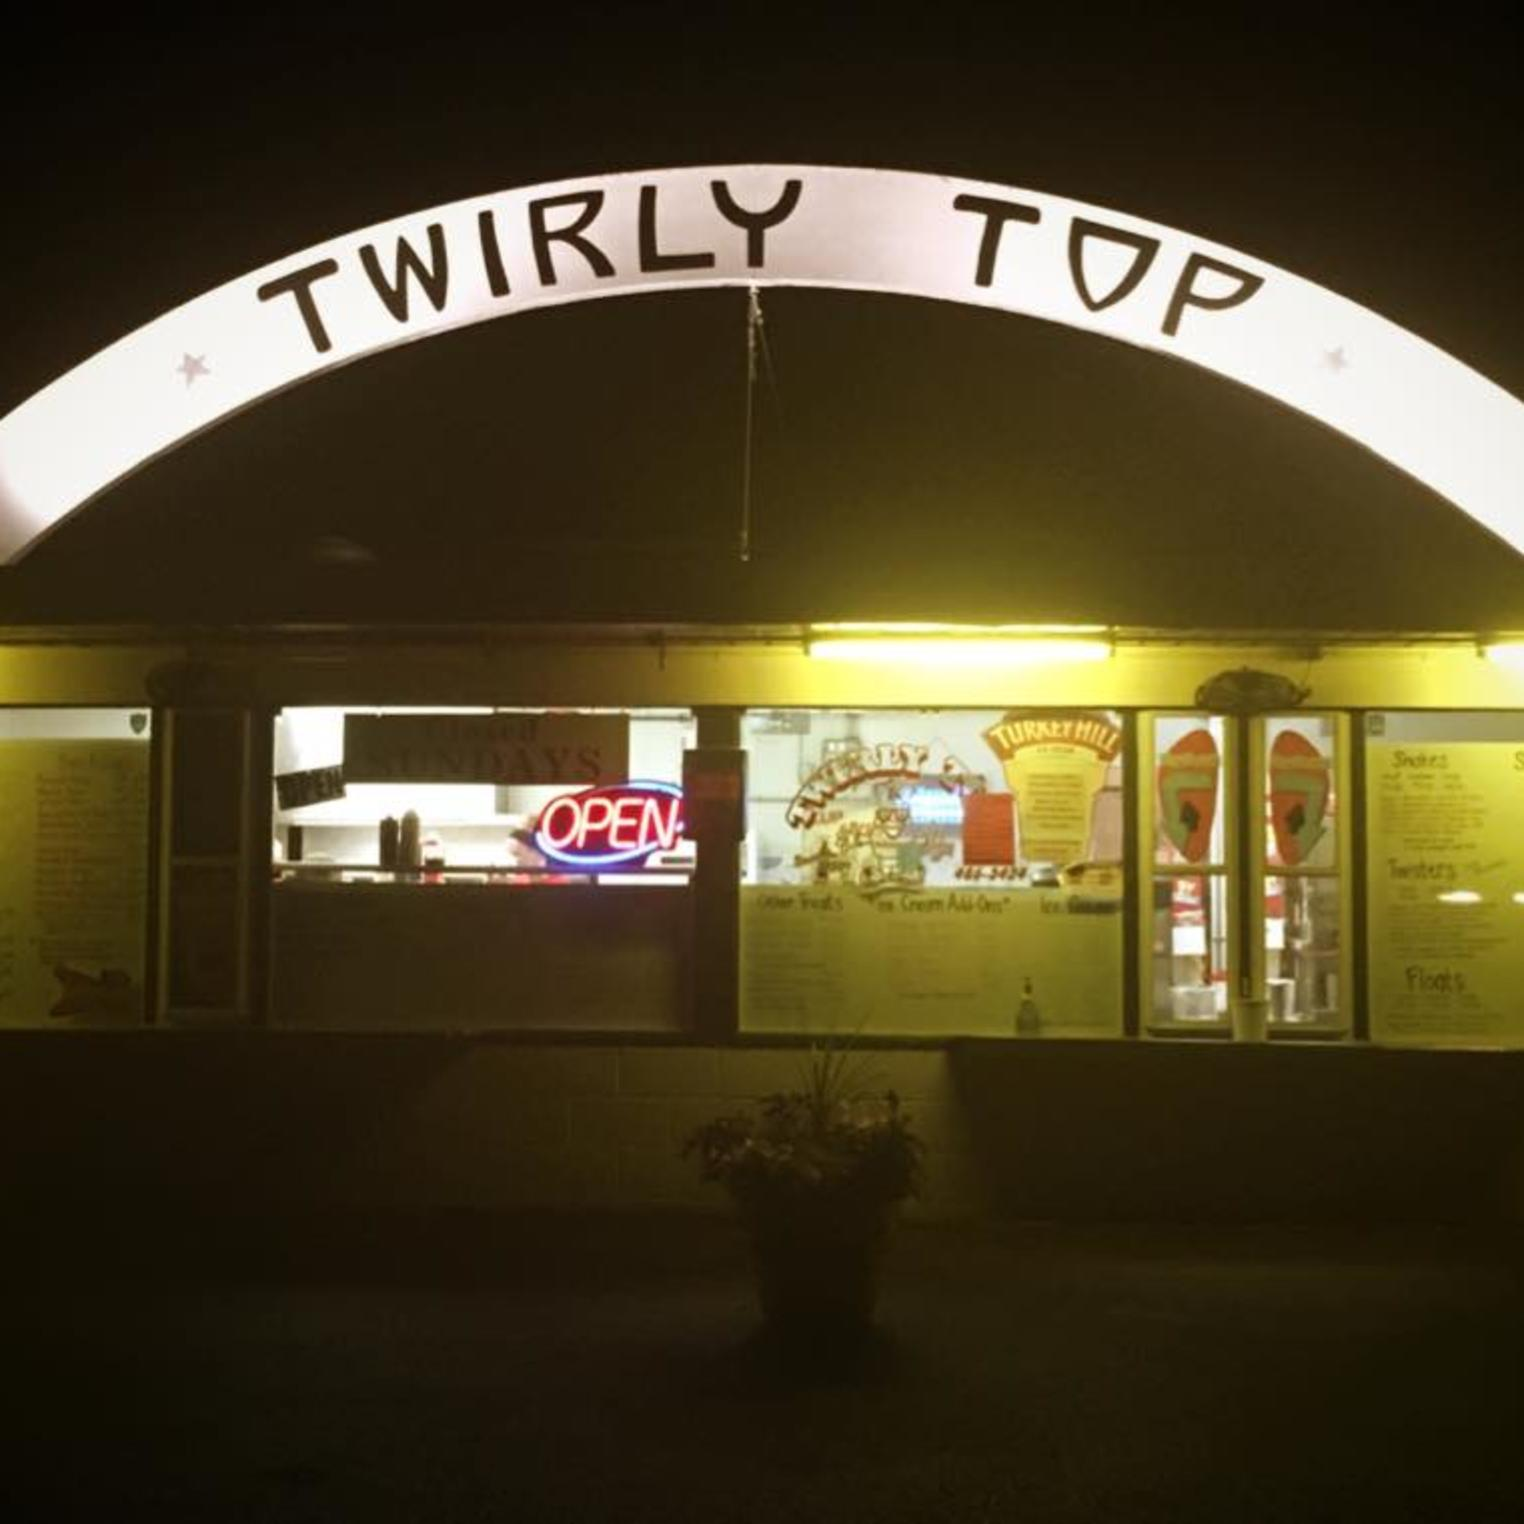 Twirly Top Arch at Night